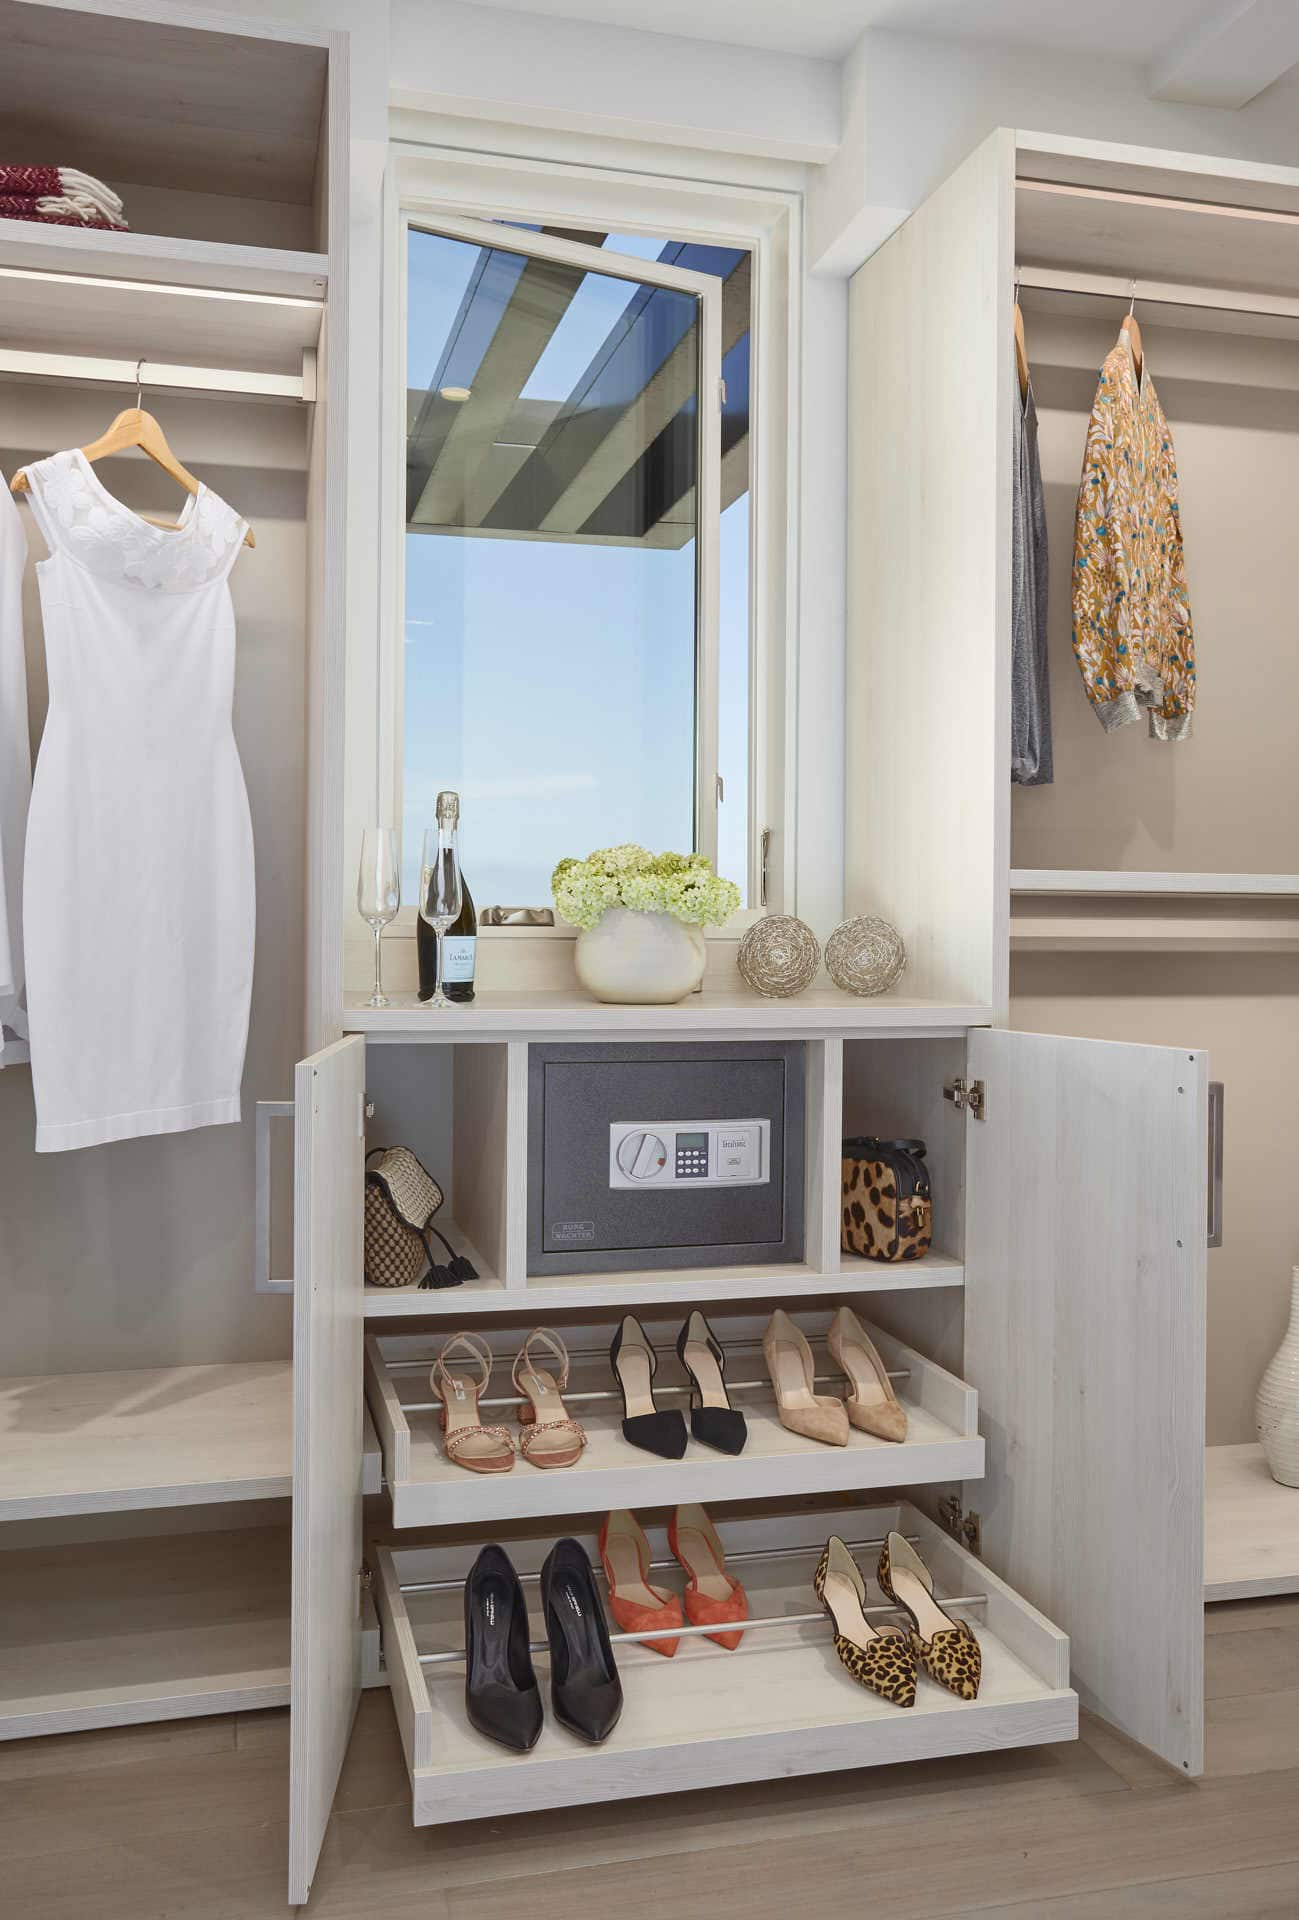 custom shoe storage and safe below a large window overlooking the pacific ocean